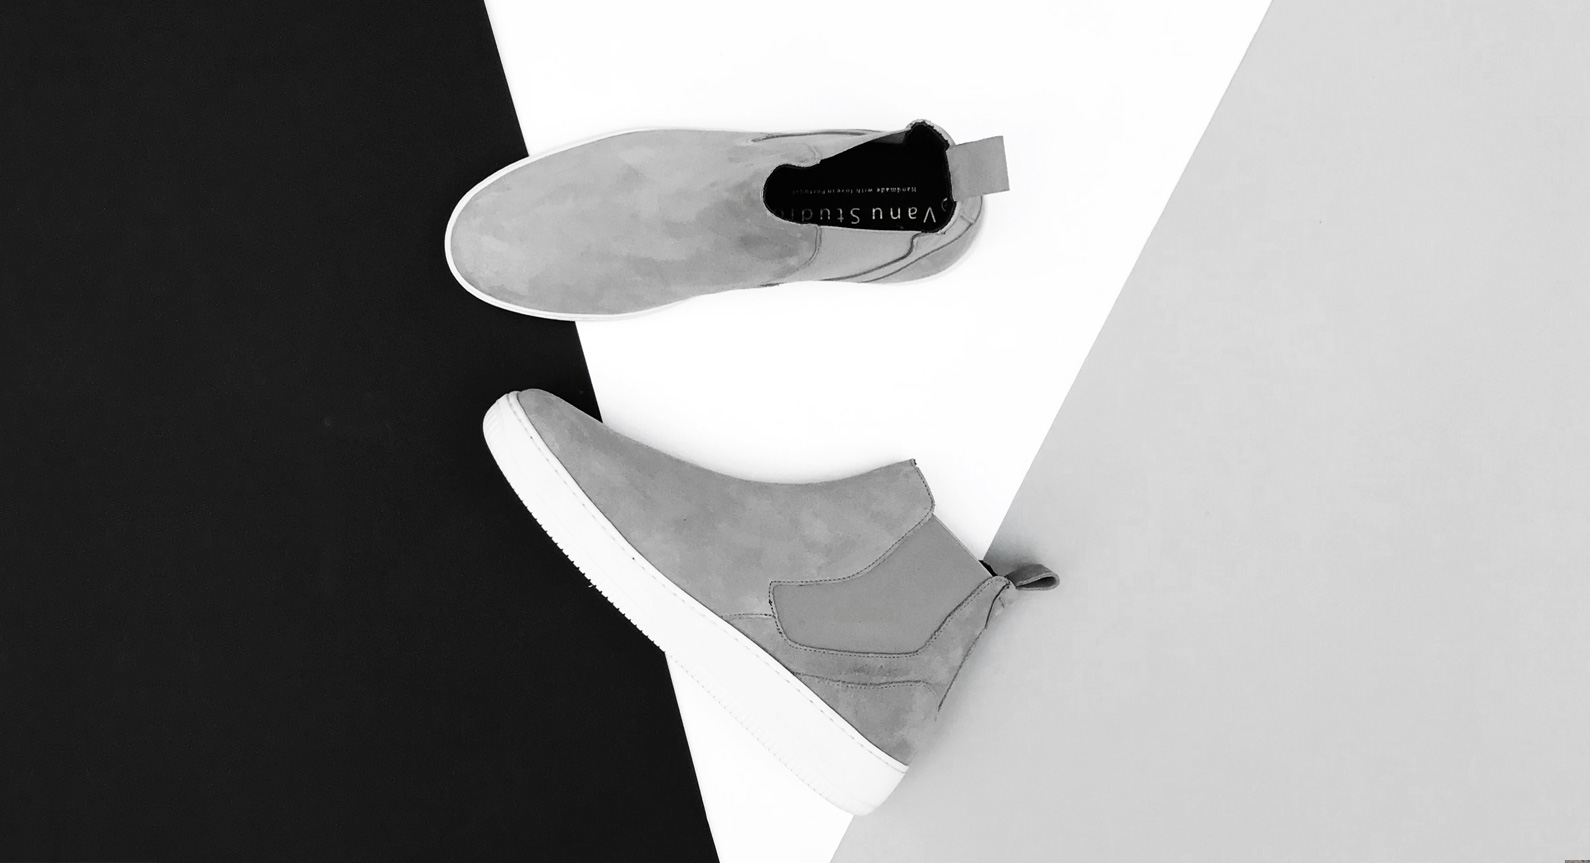 Introducing Vanu Studio: The Dutch Brand Redefining The Chelsea Boot